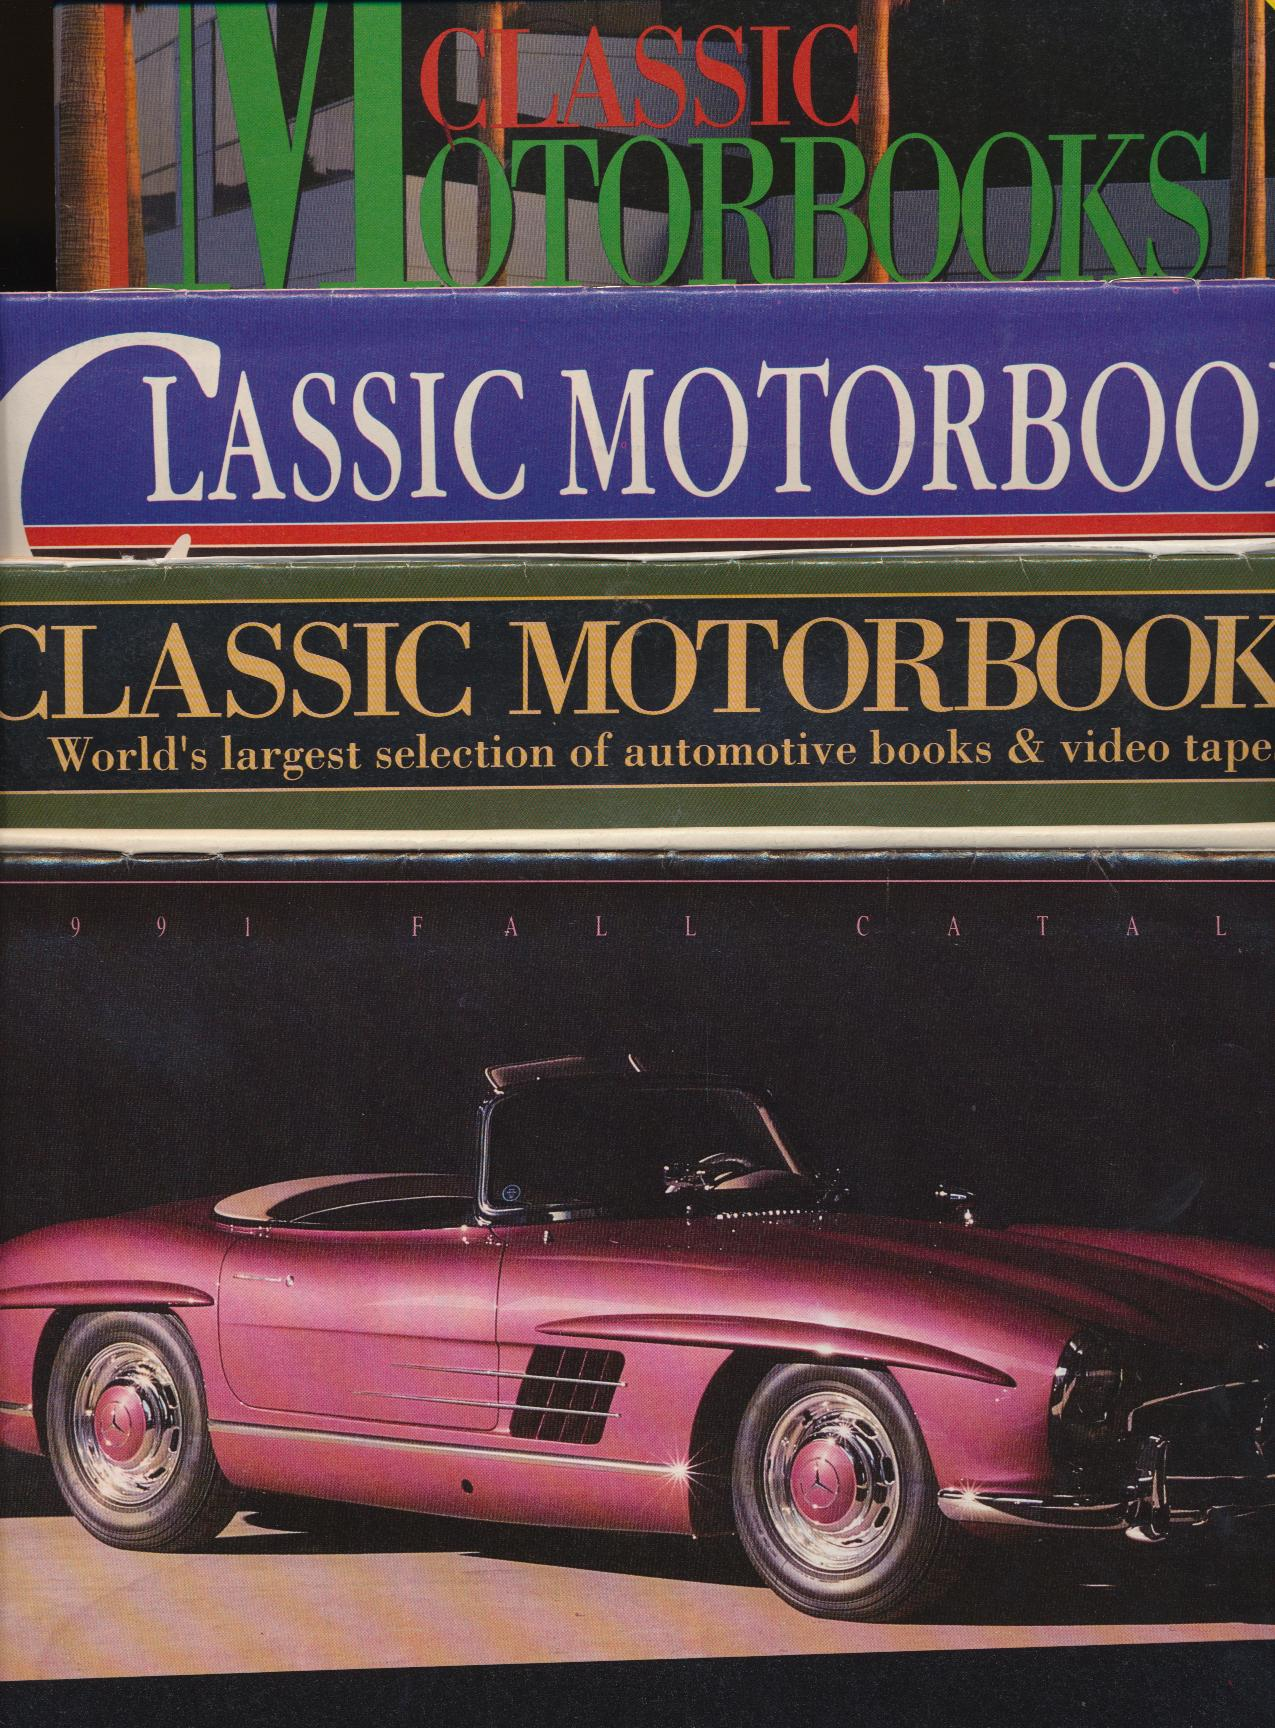 Lot Of Classic Motorbooks Catalogs - Car Books & Videotapes